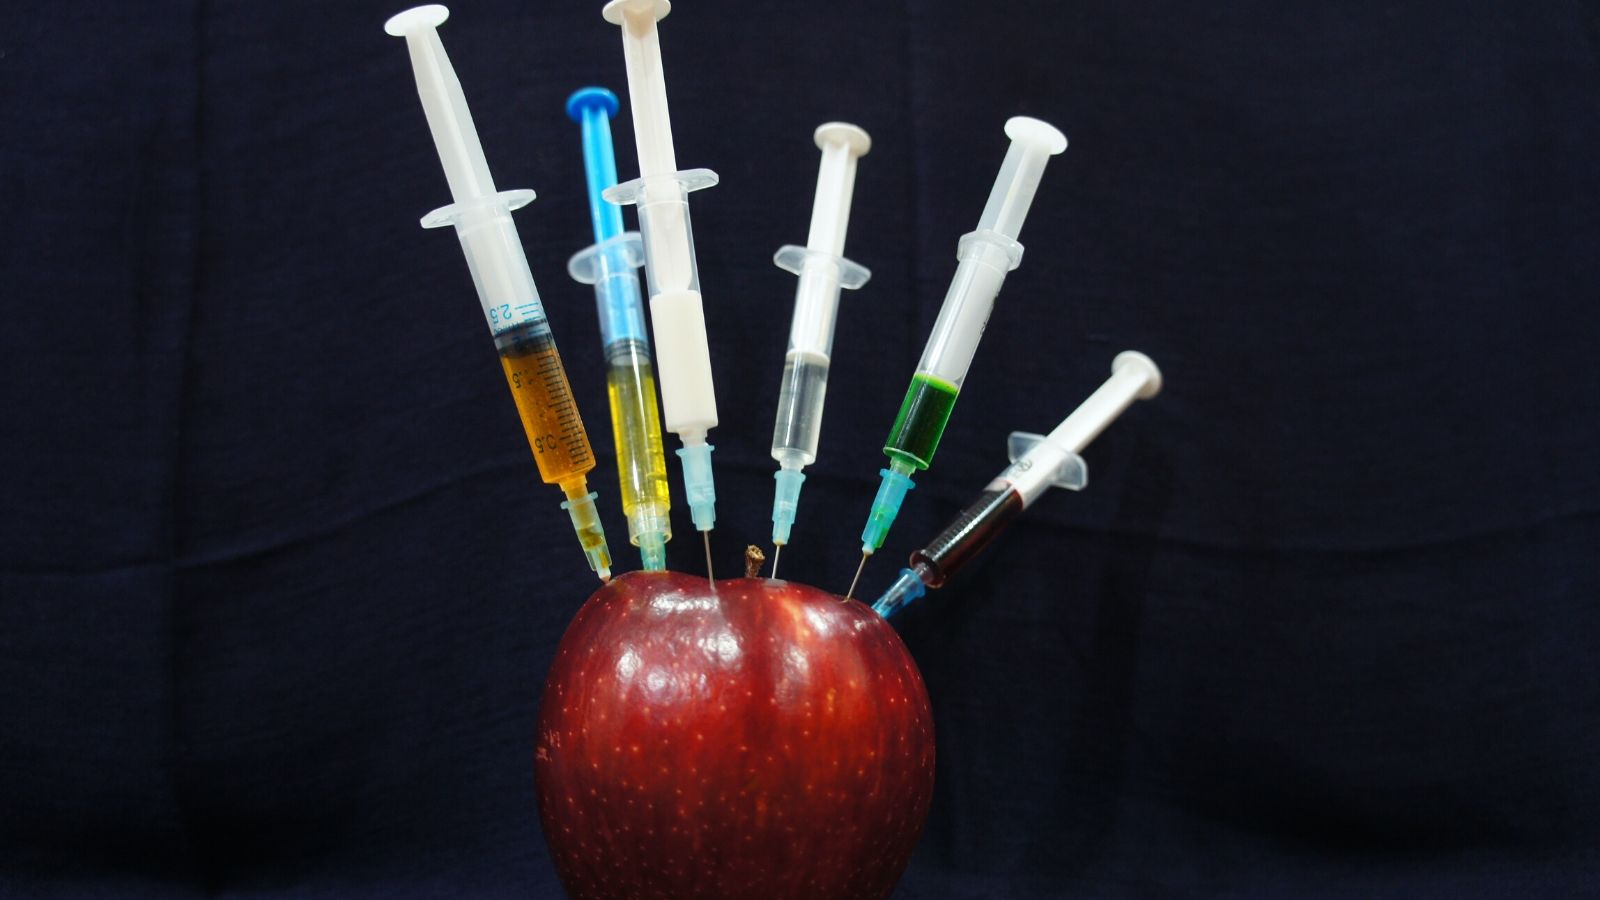 An apple with multiple syringes jabbed into it.